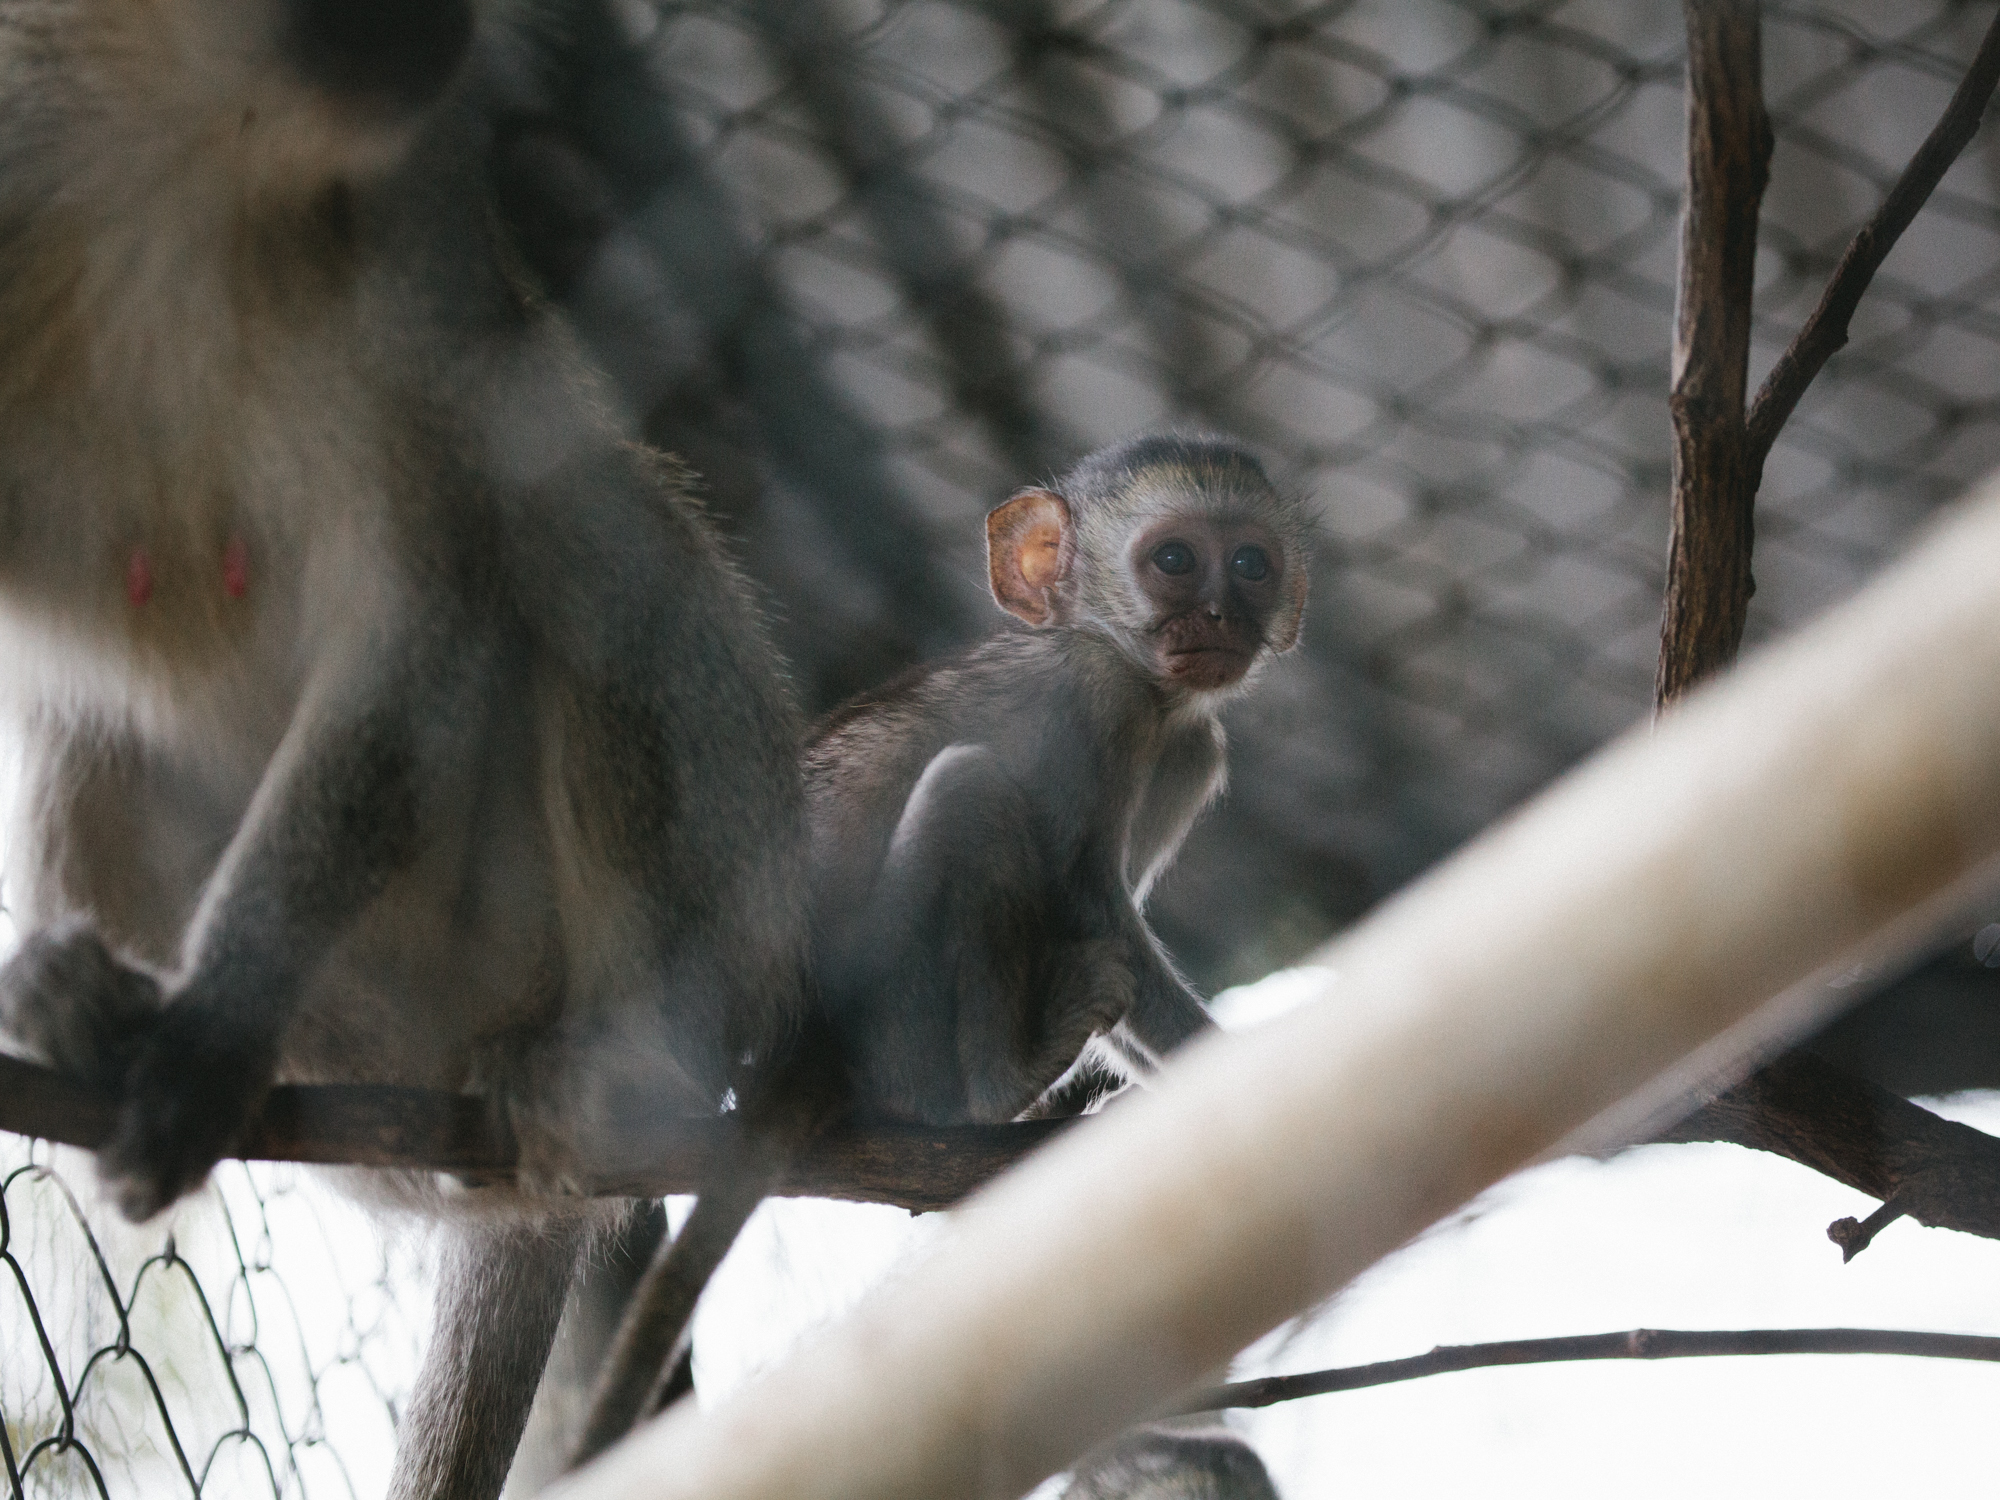 A baby vervet mid integration hangs out with a potential foster mom